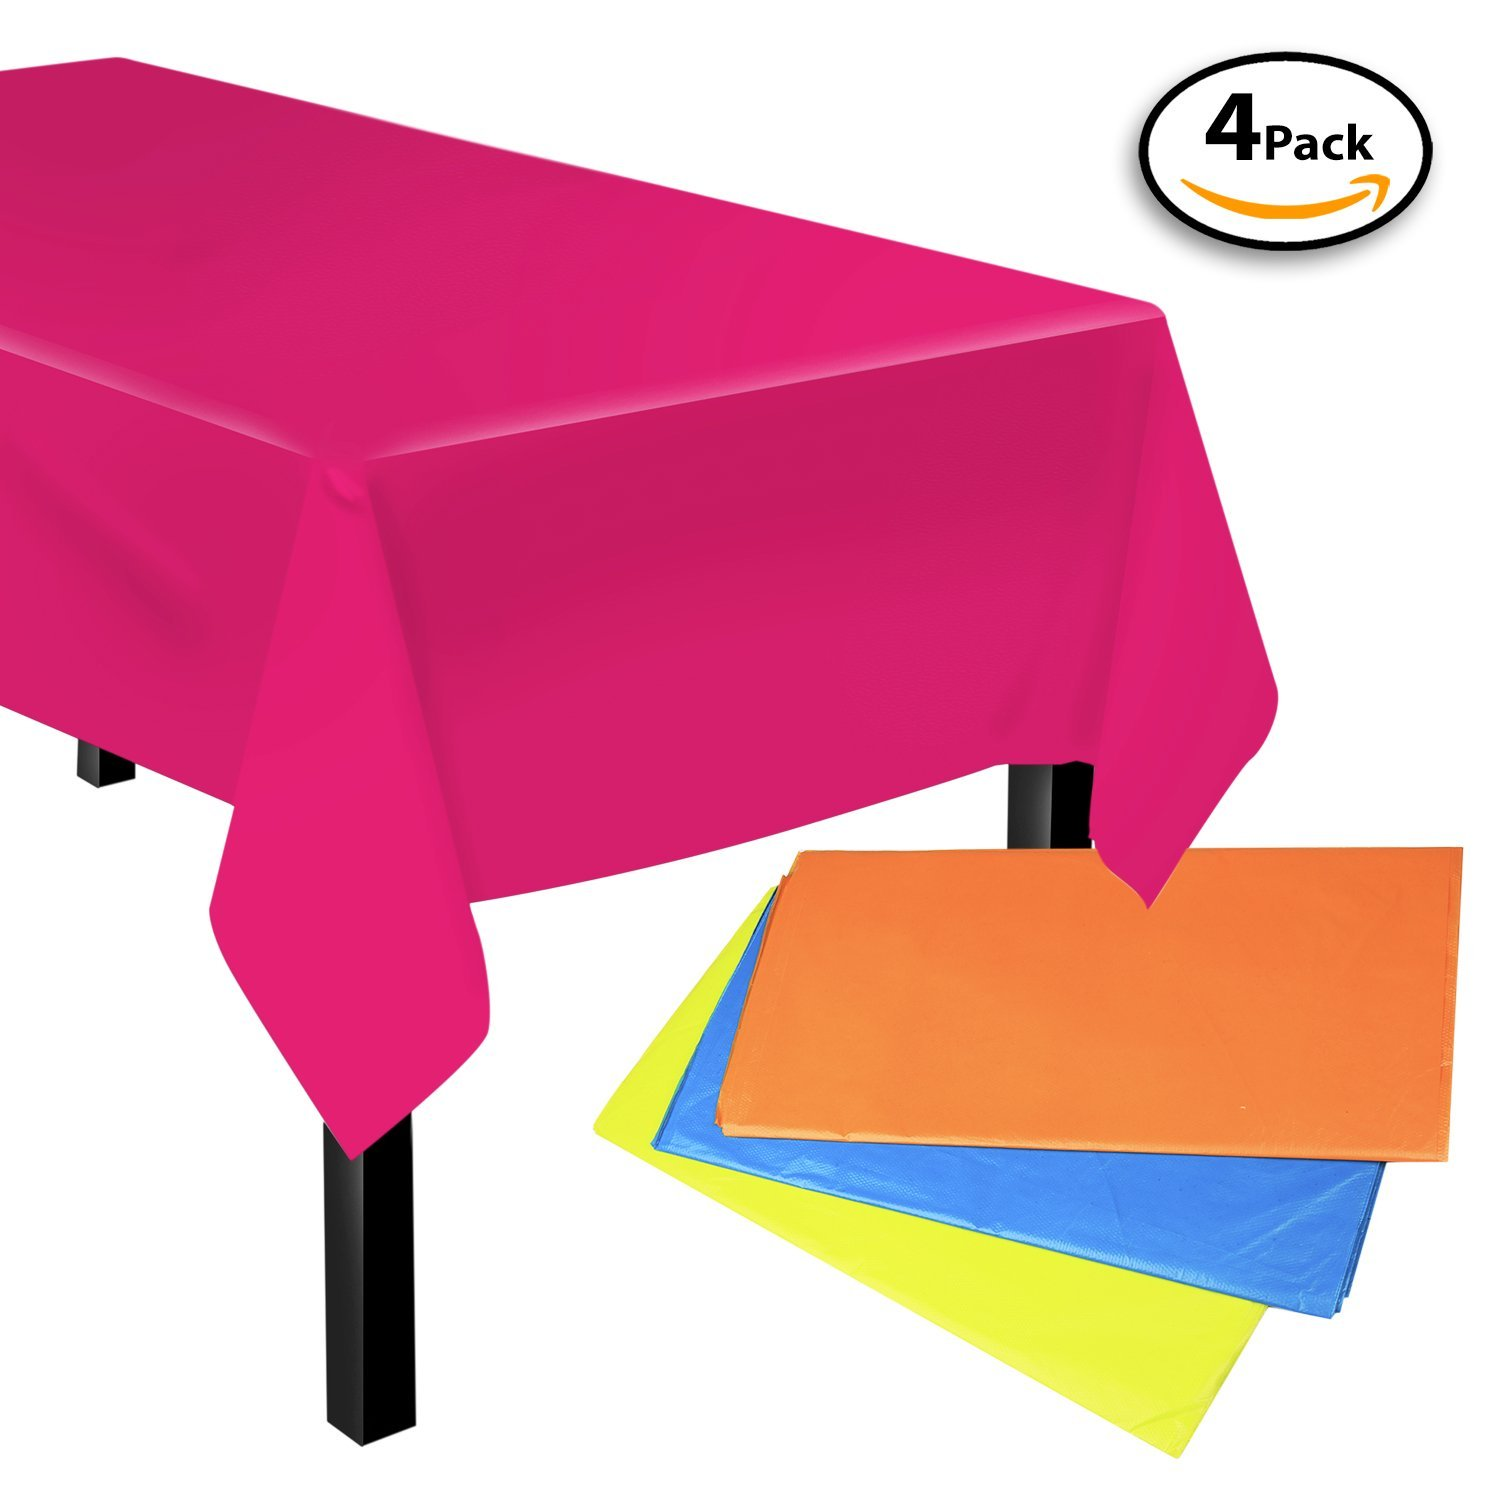 """Set of 4 - Premium Tablecloths Rectangle Table Covers Disposable Table Cloths for Parties, Holiday, Thanksgiving, Christmas, Picnics, 54"""" X 108"""","""